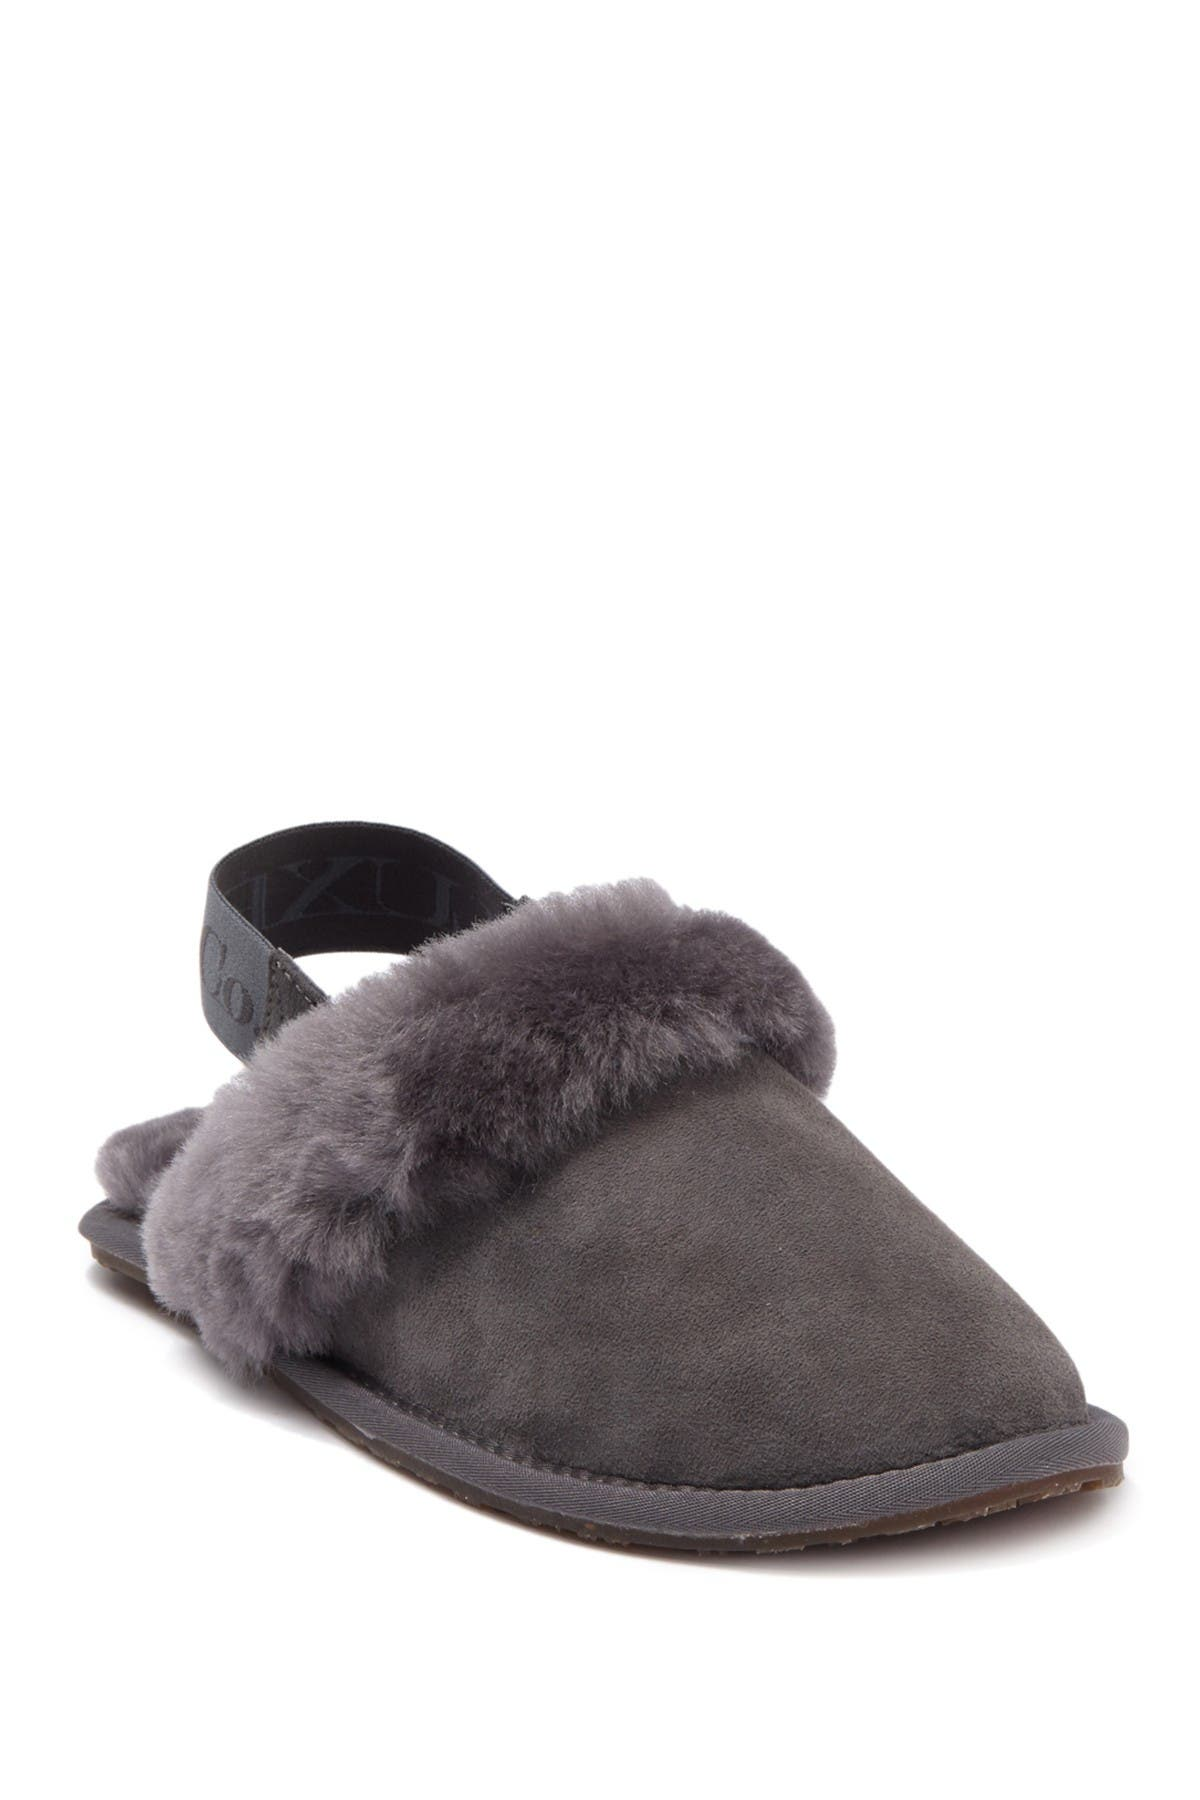 Image of Australia Luxe Collective Genuine Shearling Slingback Mule Slipper